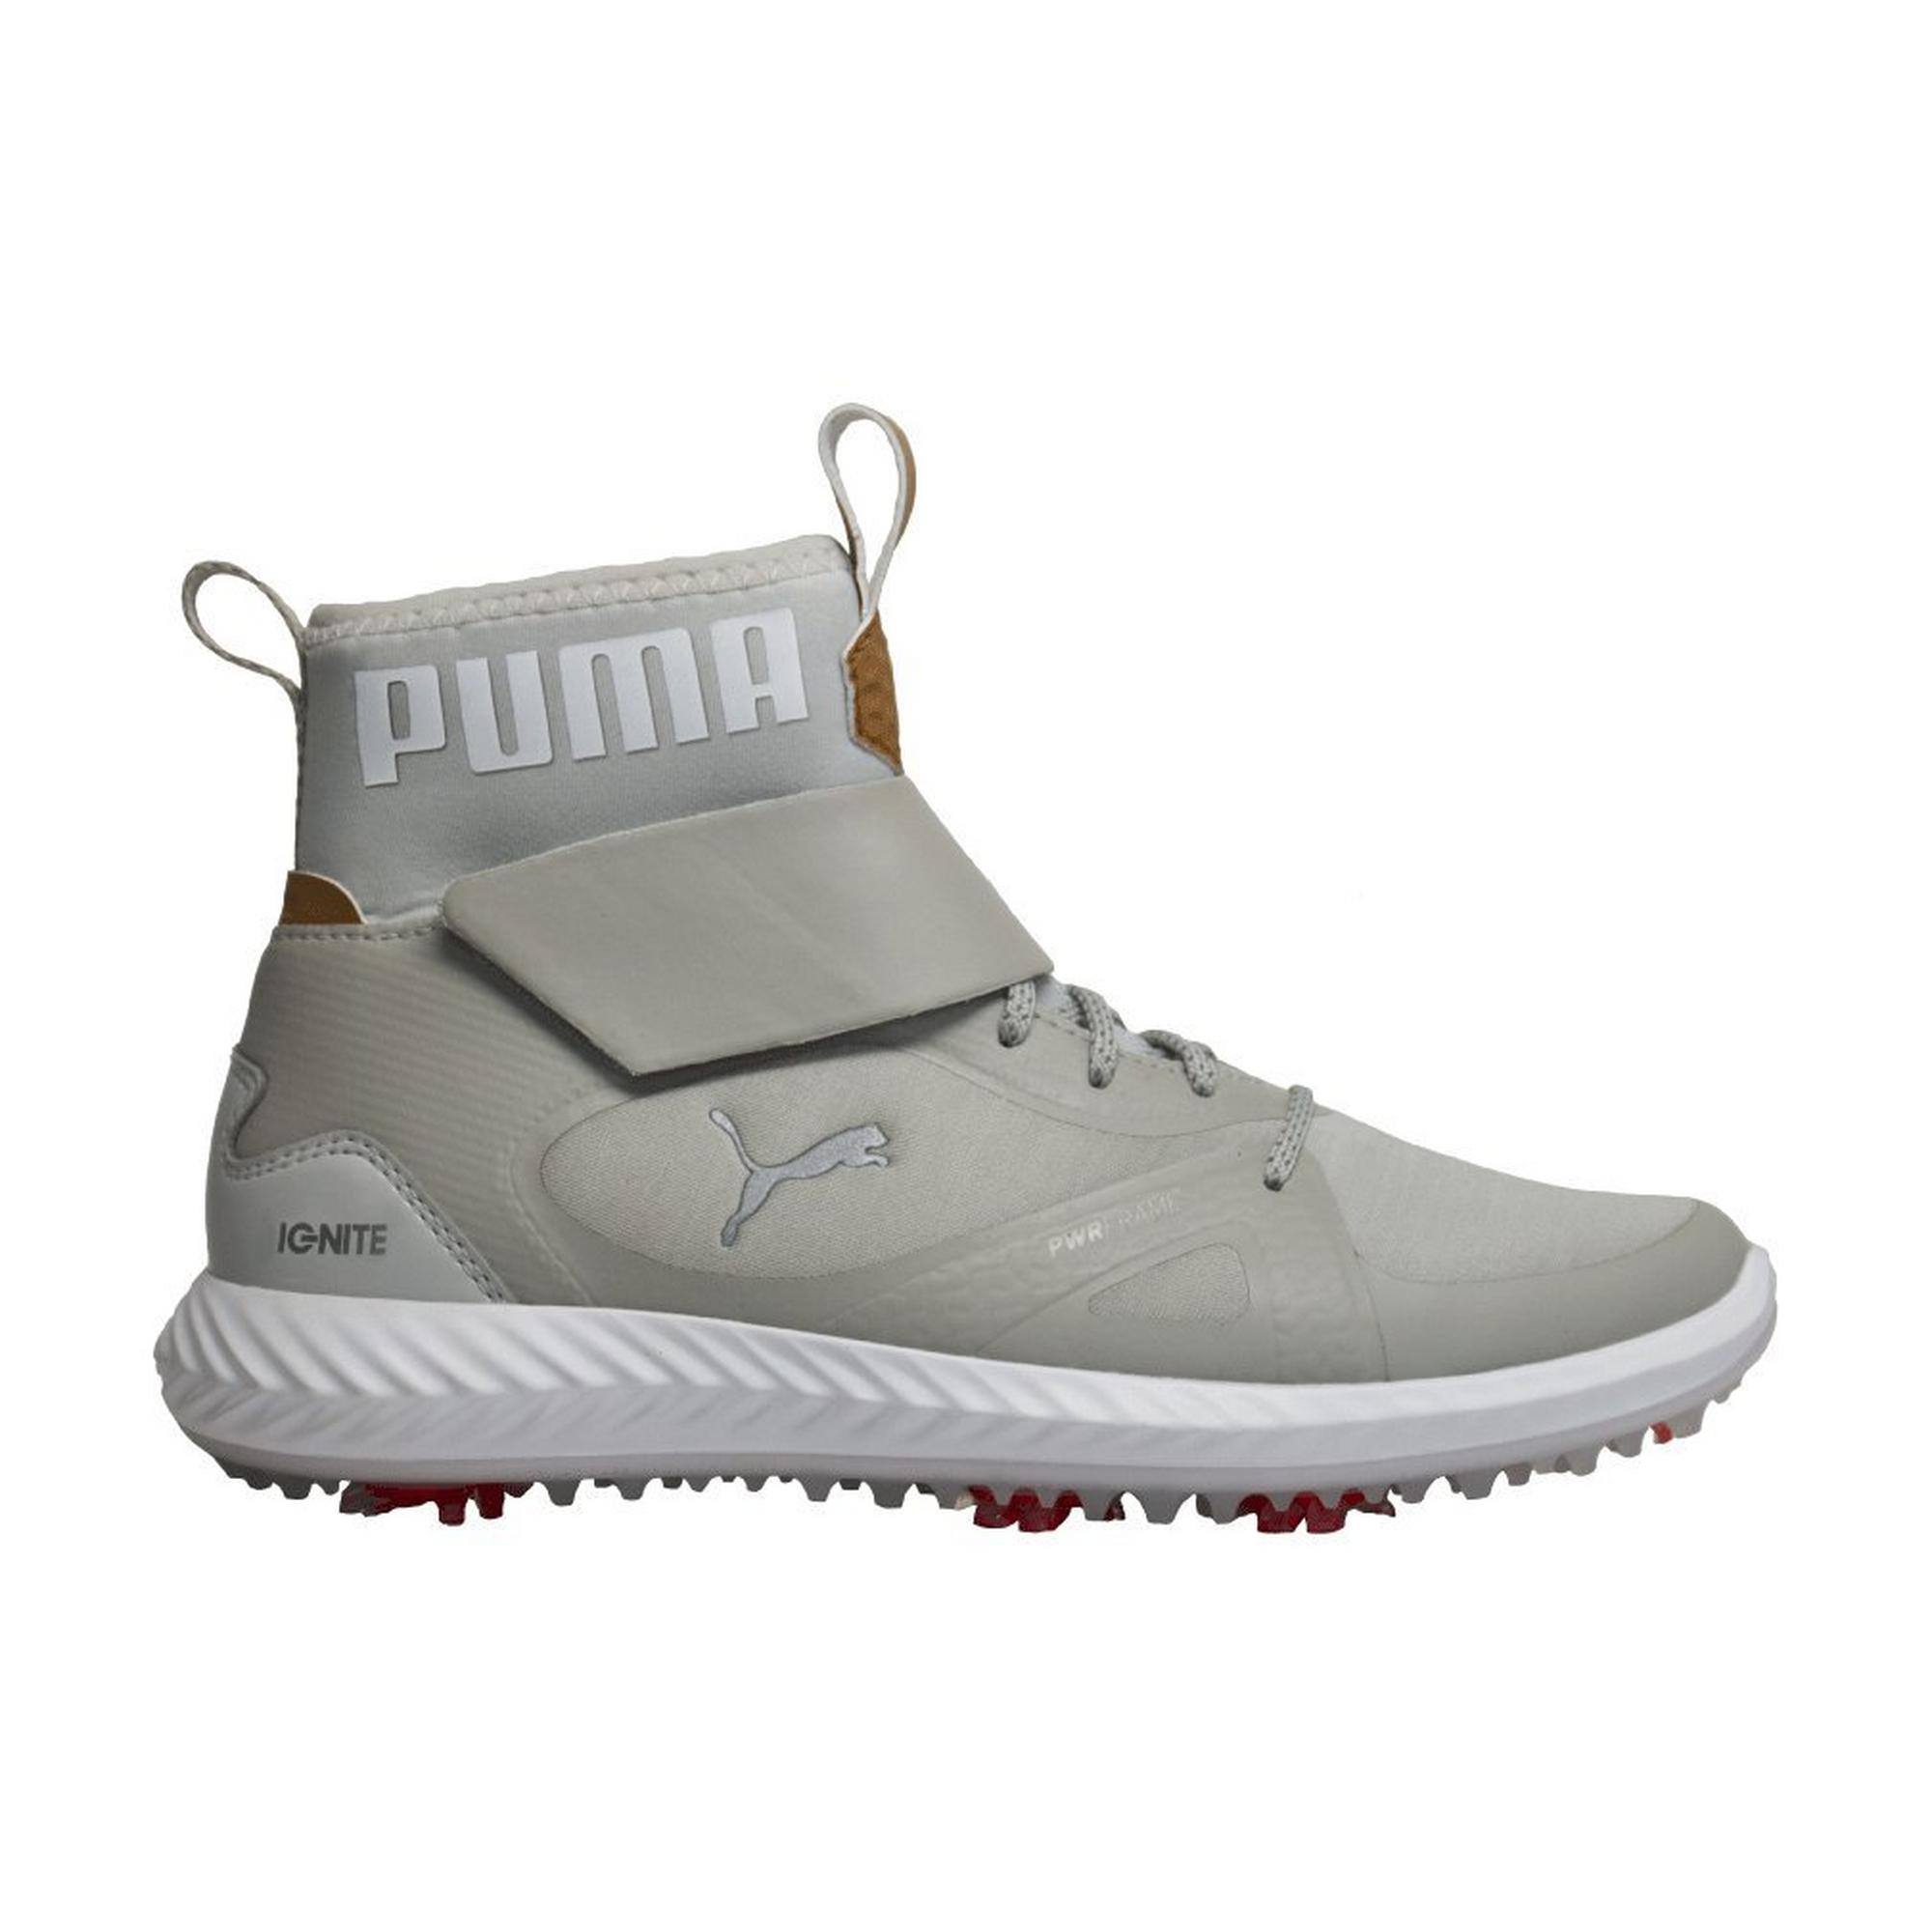 Junior's Ignite Poweradapt Hi-Top Spiked Golf Shoe - WHT/SIL